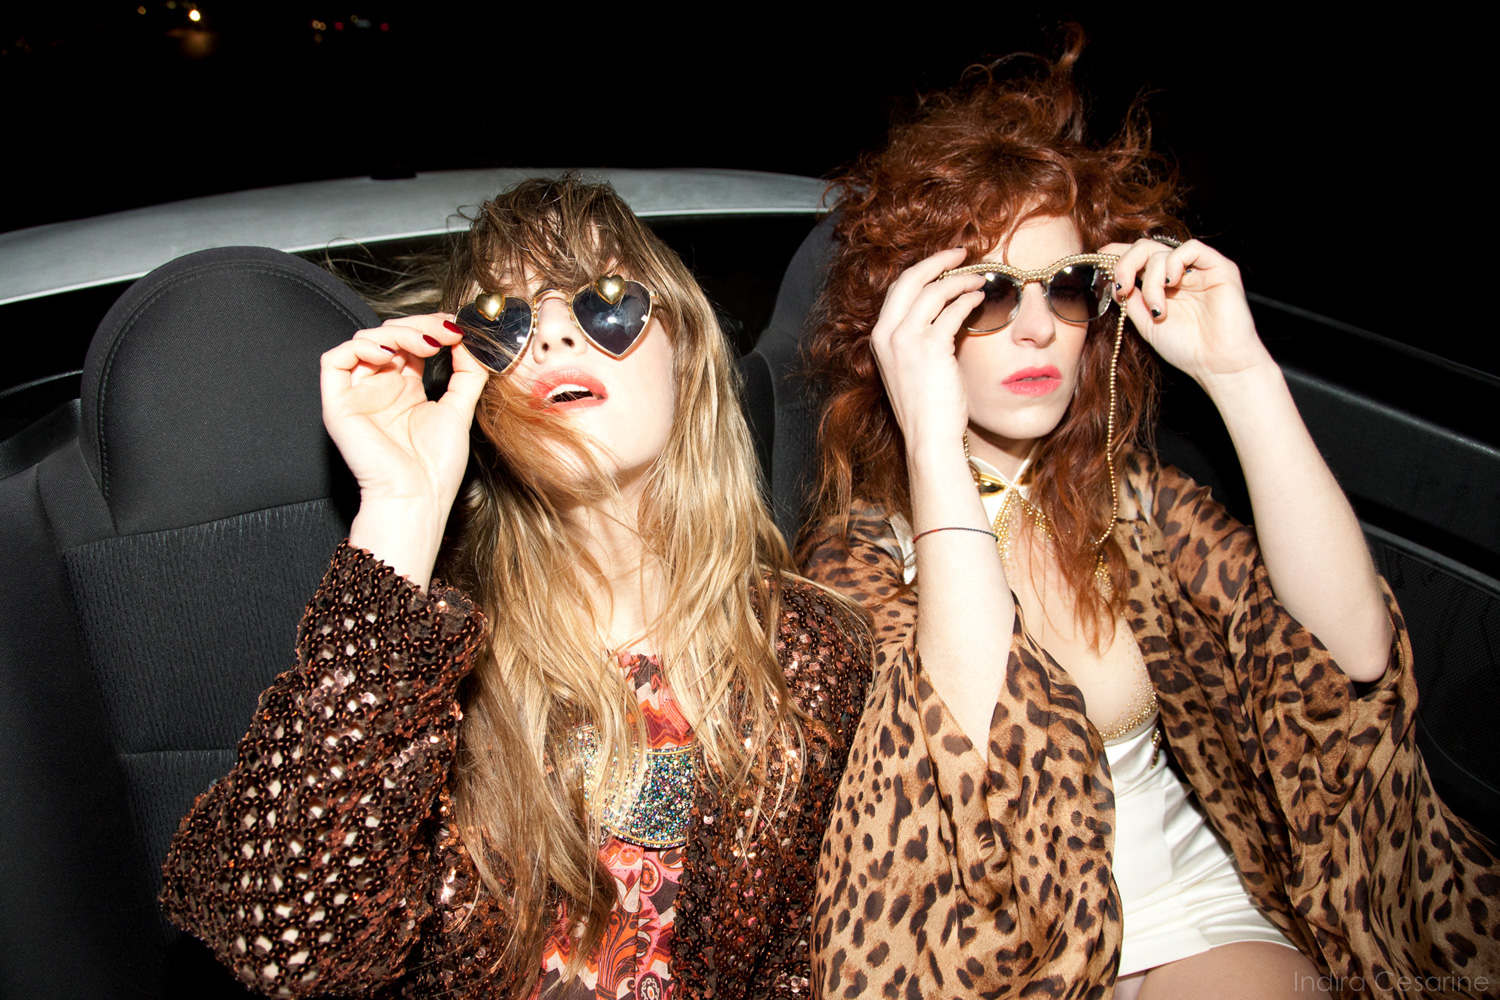 Deap-Vally-Photography-by-Indira-Cesarine-001.jpg